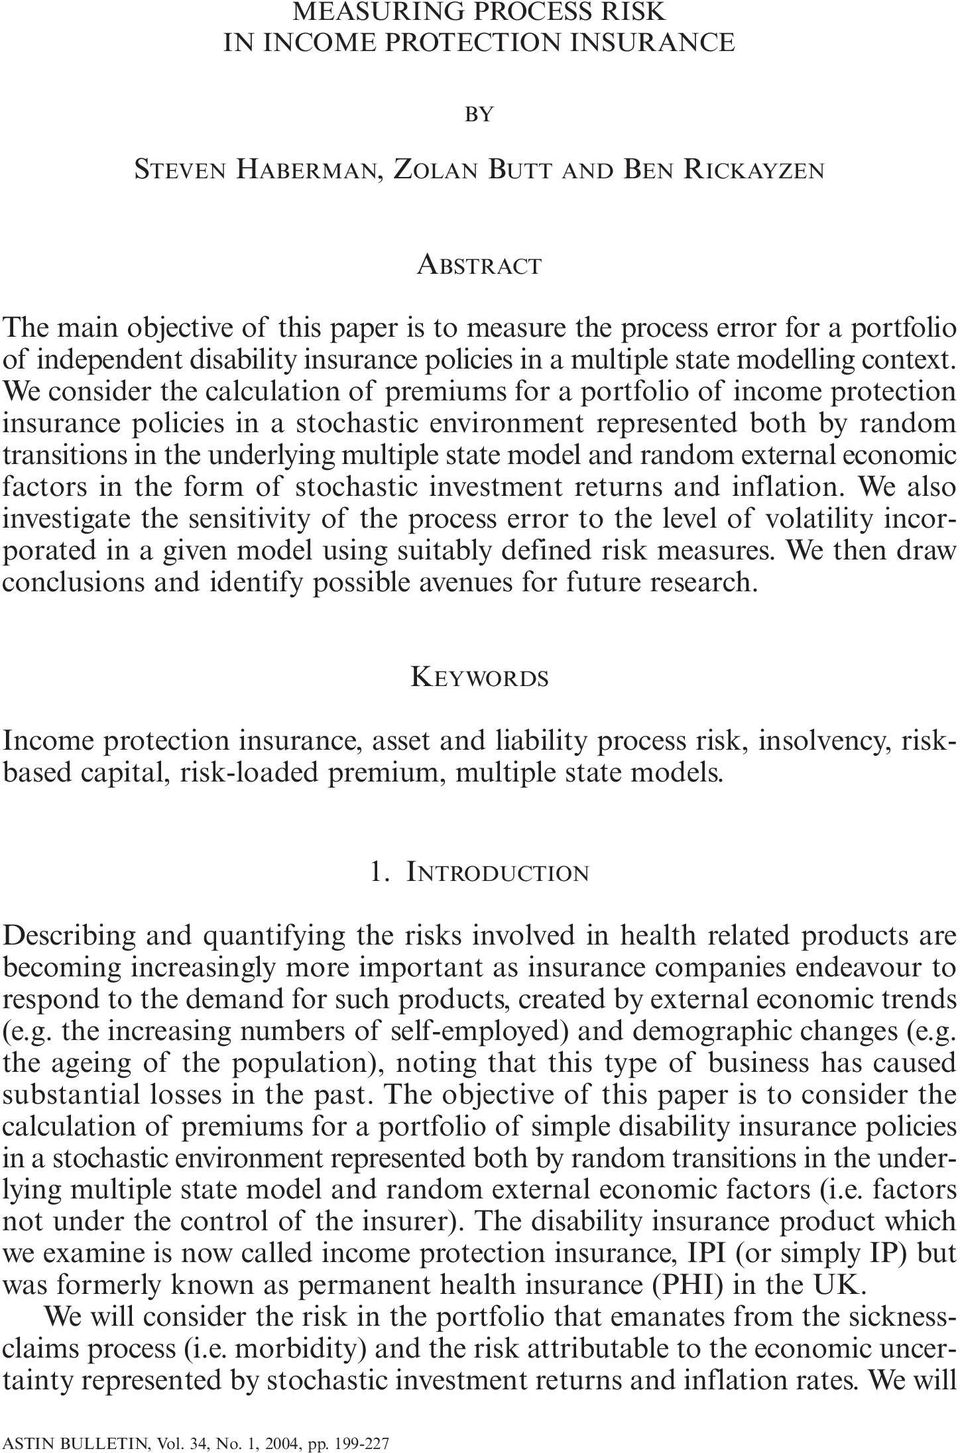 We consider the calculation of premiums for a portfolio of income protection insurance policies in a stochastic environment represented both by random transitions in the underlying multiple state